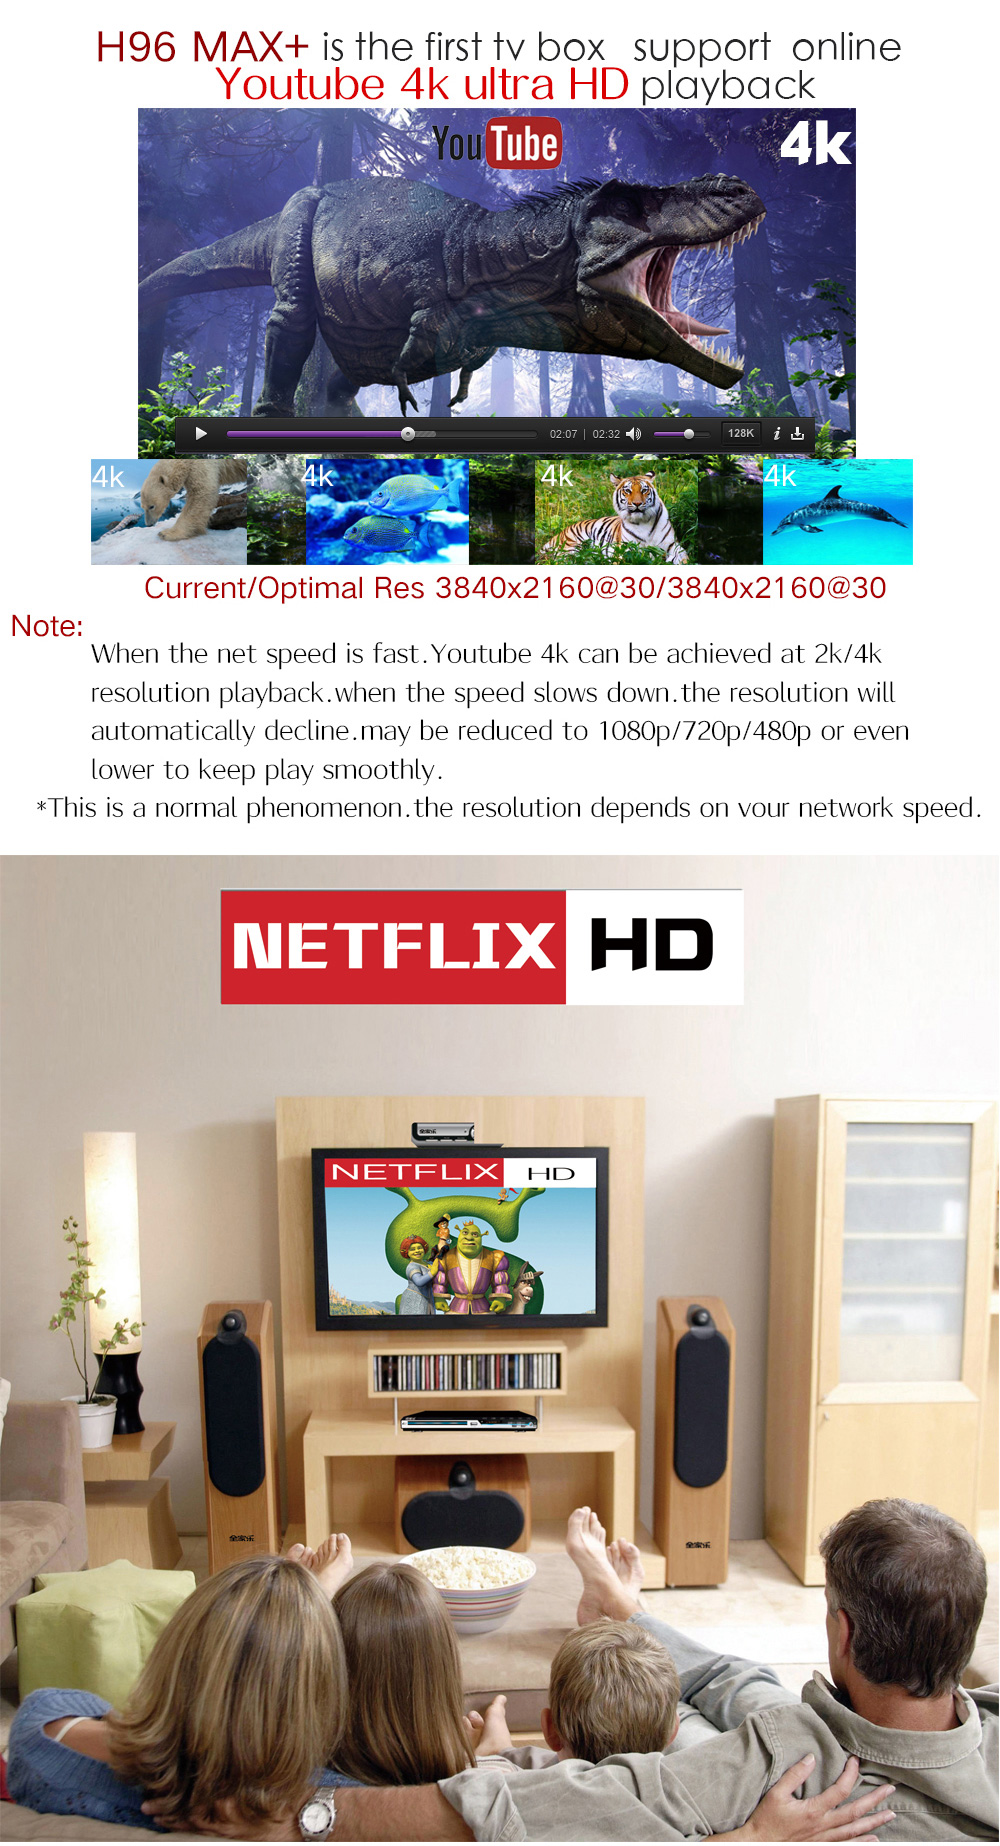 H96 Max Plus RK3328 4GB RAM 64GB ROM Android 8.1 USB3.0 5G WIFI TV Box Support HD Netflix 4K Youtube